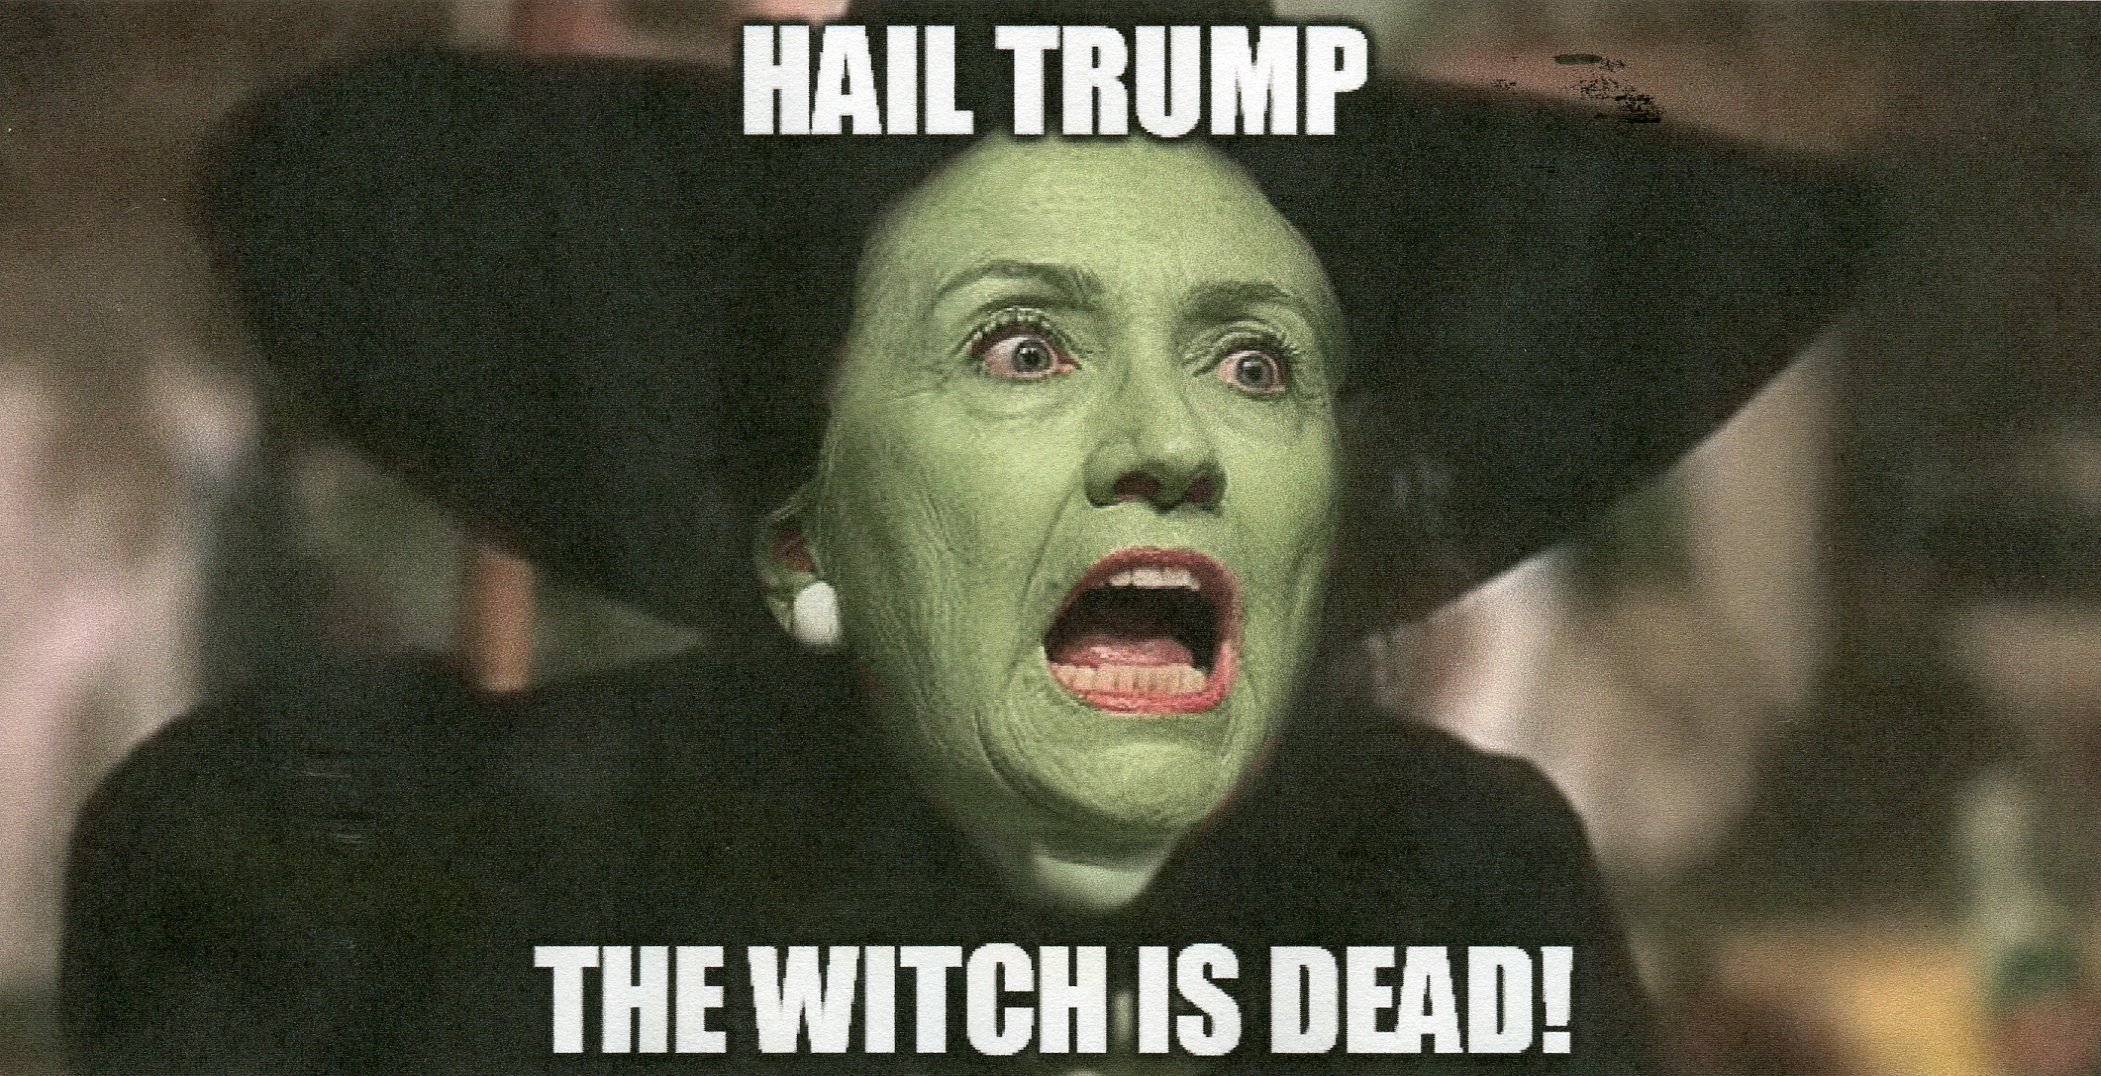 ClintonWitchDead